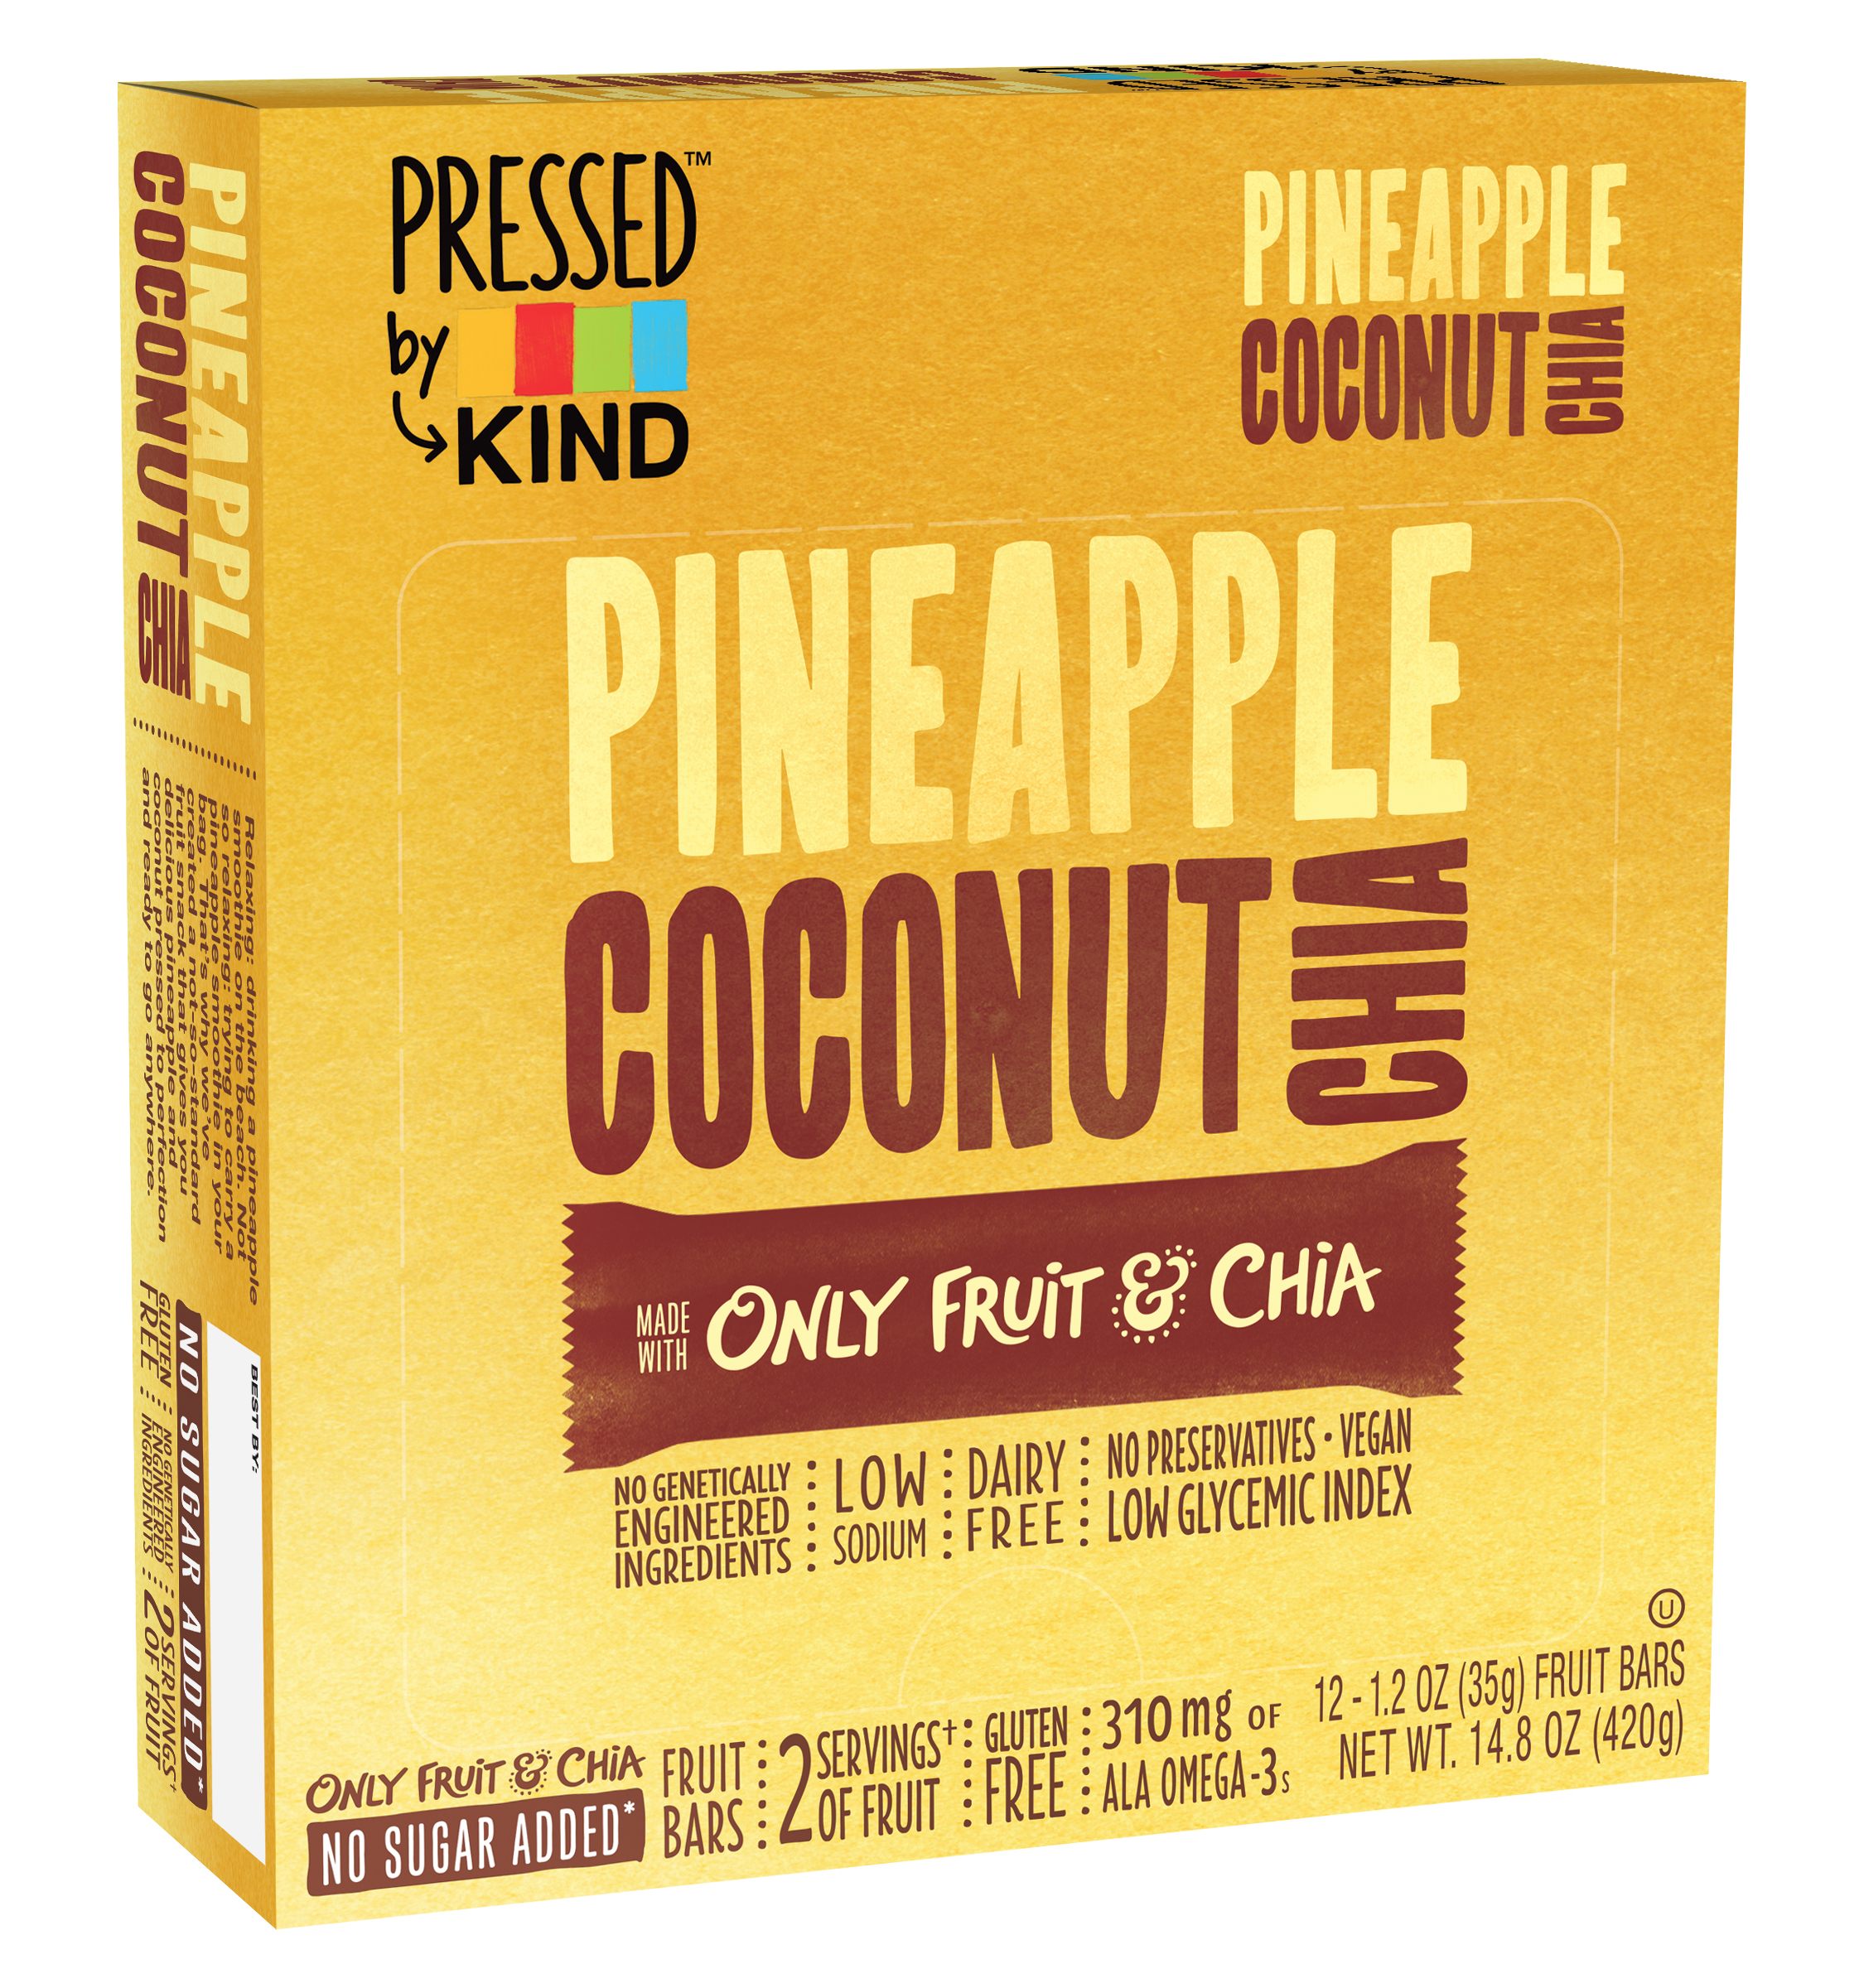 Kind Gluten-Free Pineapple Coconut Chia Fruit Bars, 1.2 Oz., 12 Count